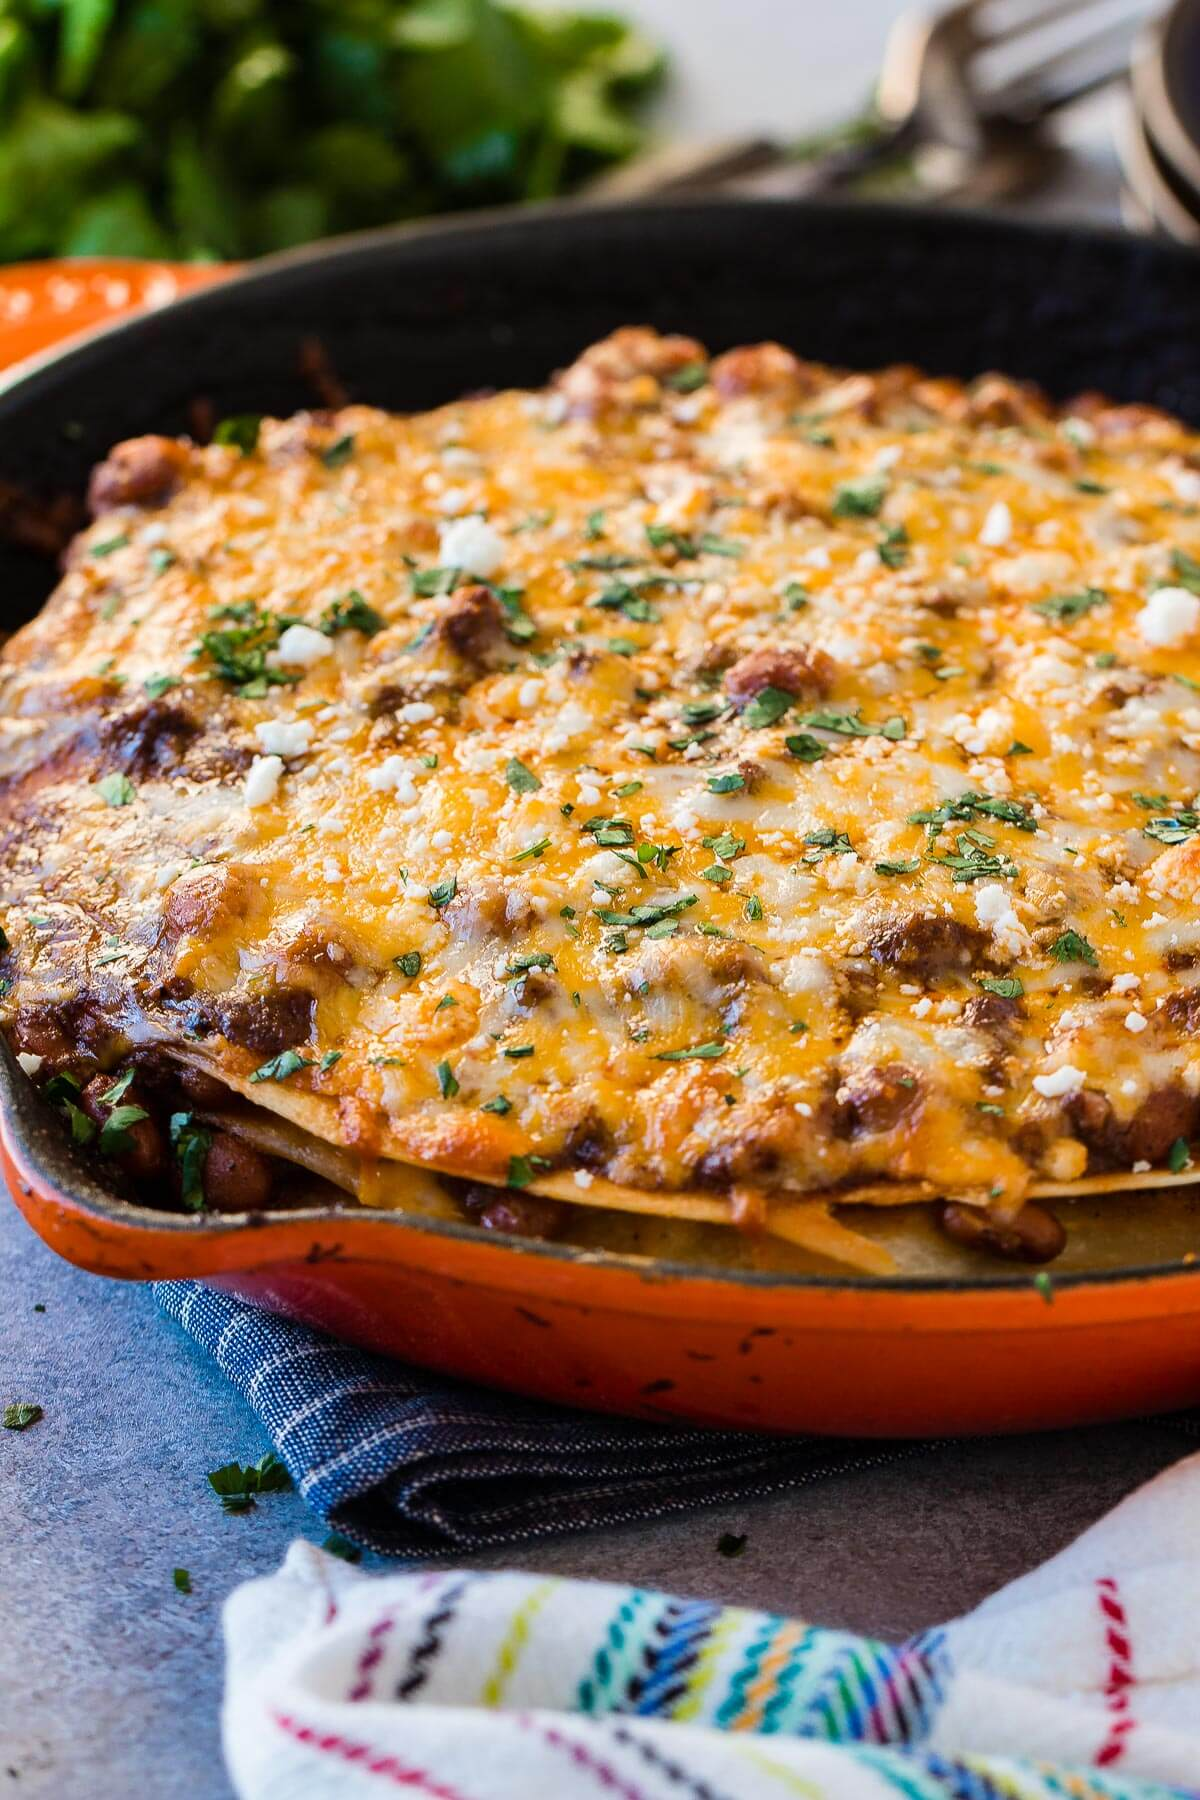 Nothing is better than a skillet piled high with saucy meat, flour tortillas and gooey cheese. One skillet enchilada casserole is perfect for family dinner. ohsweetbasil.com